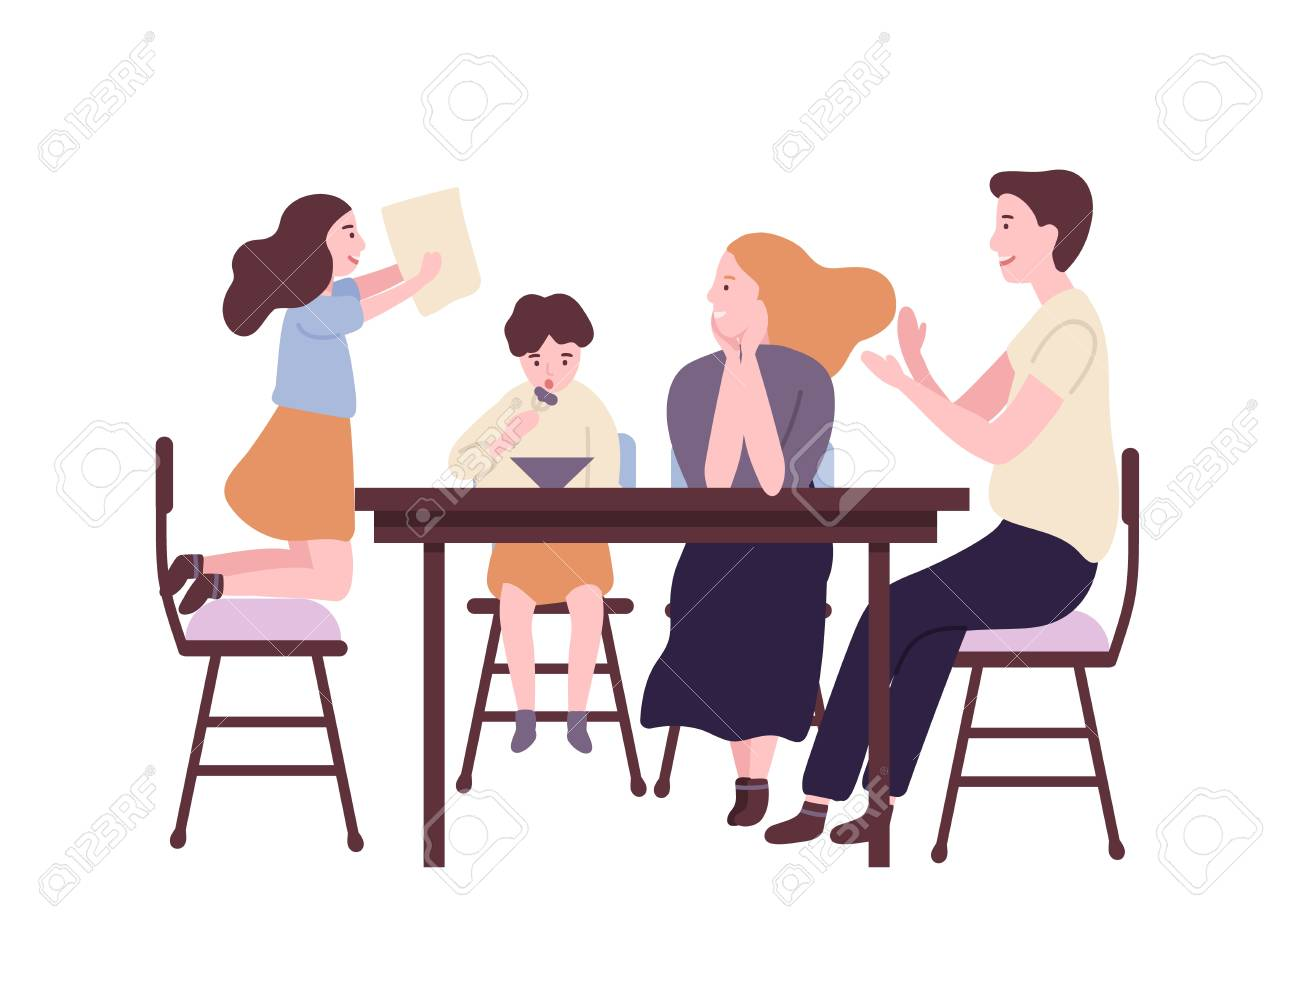 Happy family sitting at dining table and having breakfast, lunch or dinner. Smiling mother, father, son and daughter eating together. Parents and child at home. Flat cartoon vector illustration - 123621893